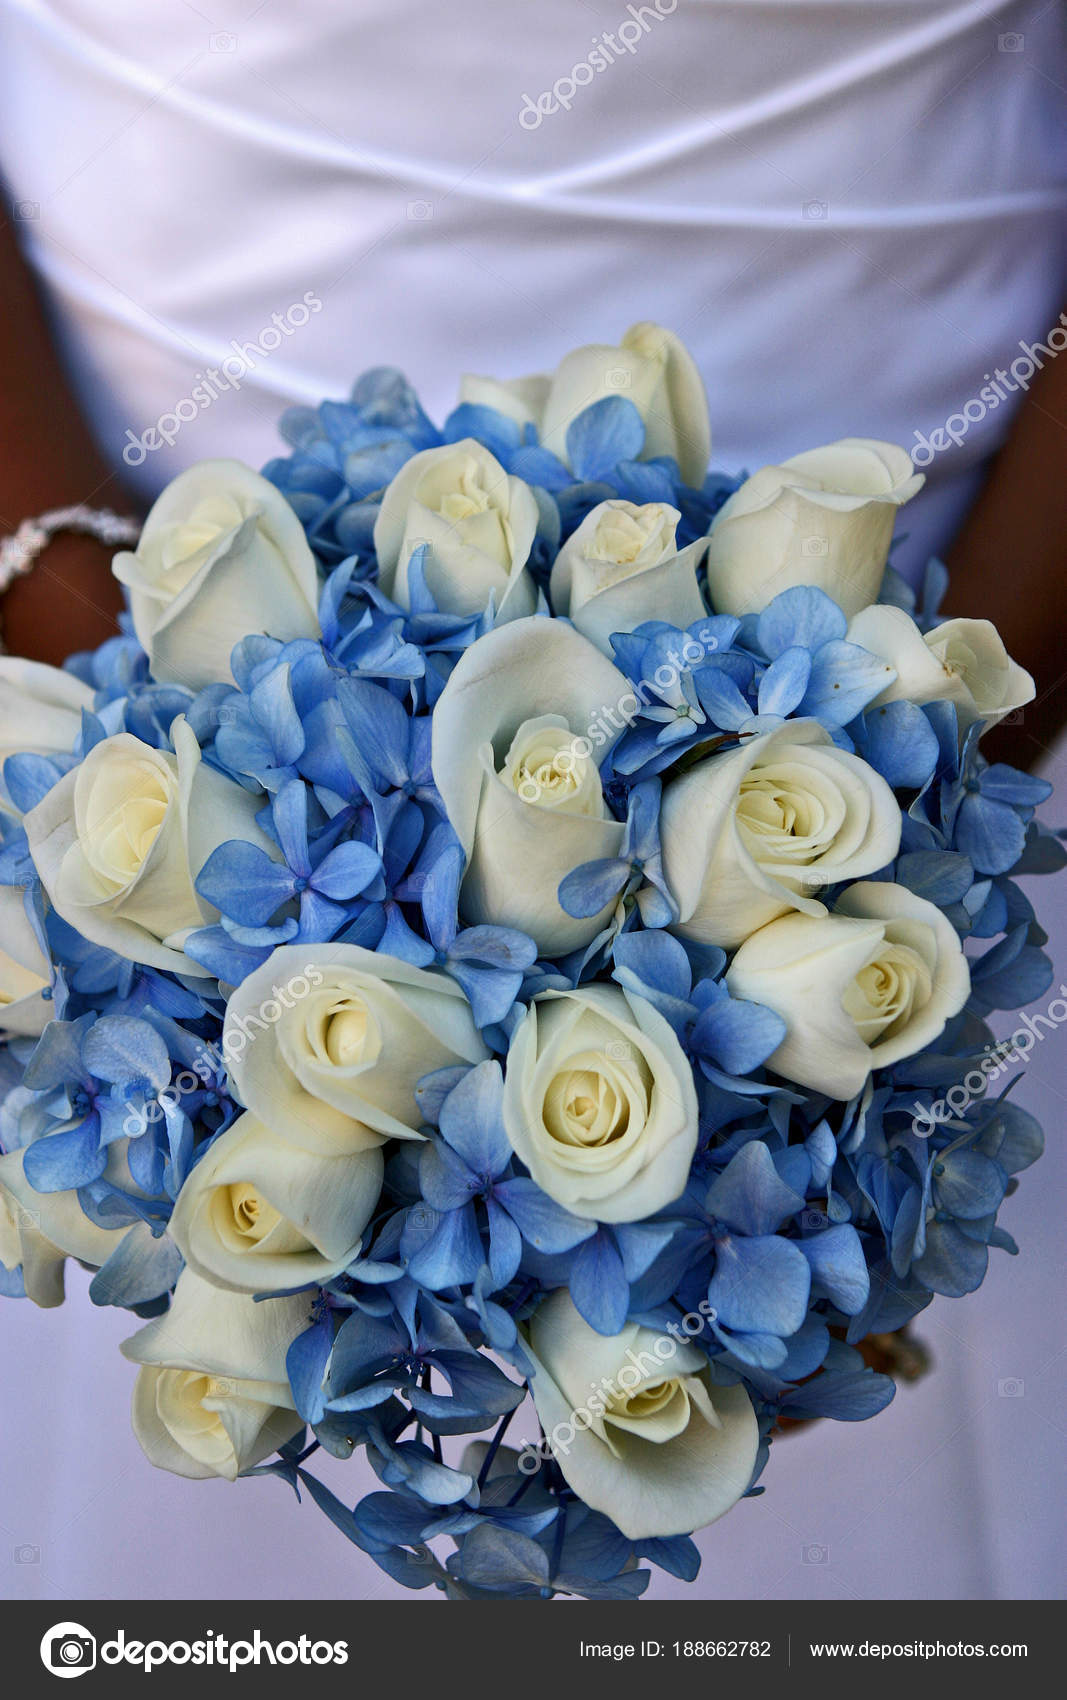 Brides blue and white bouquet stock photo beckerphotos 188662782 brides wedding flowers blue flowers and white roses photo by beckerphotos izmirmasajfo